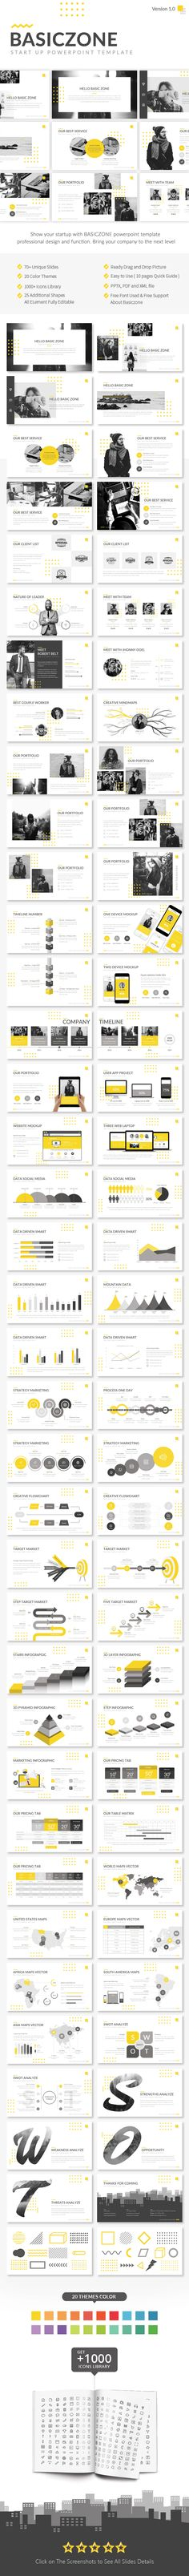 Basiczone V1 - Start Up Powerpoint Template - Creative PowerPoint Templates